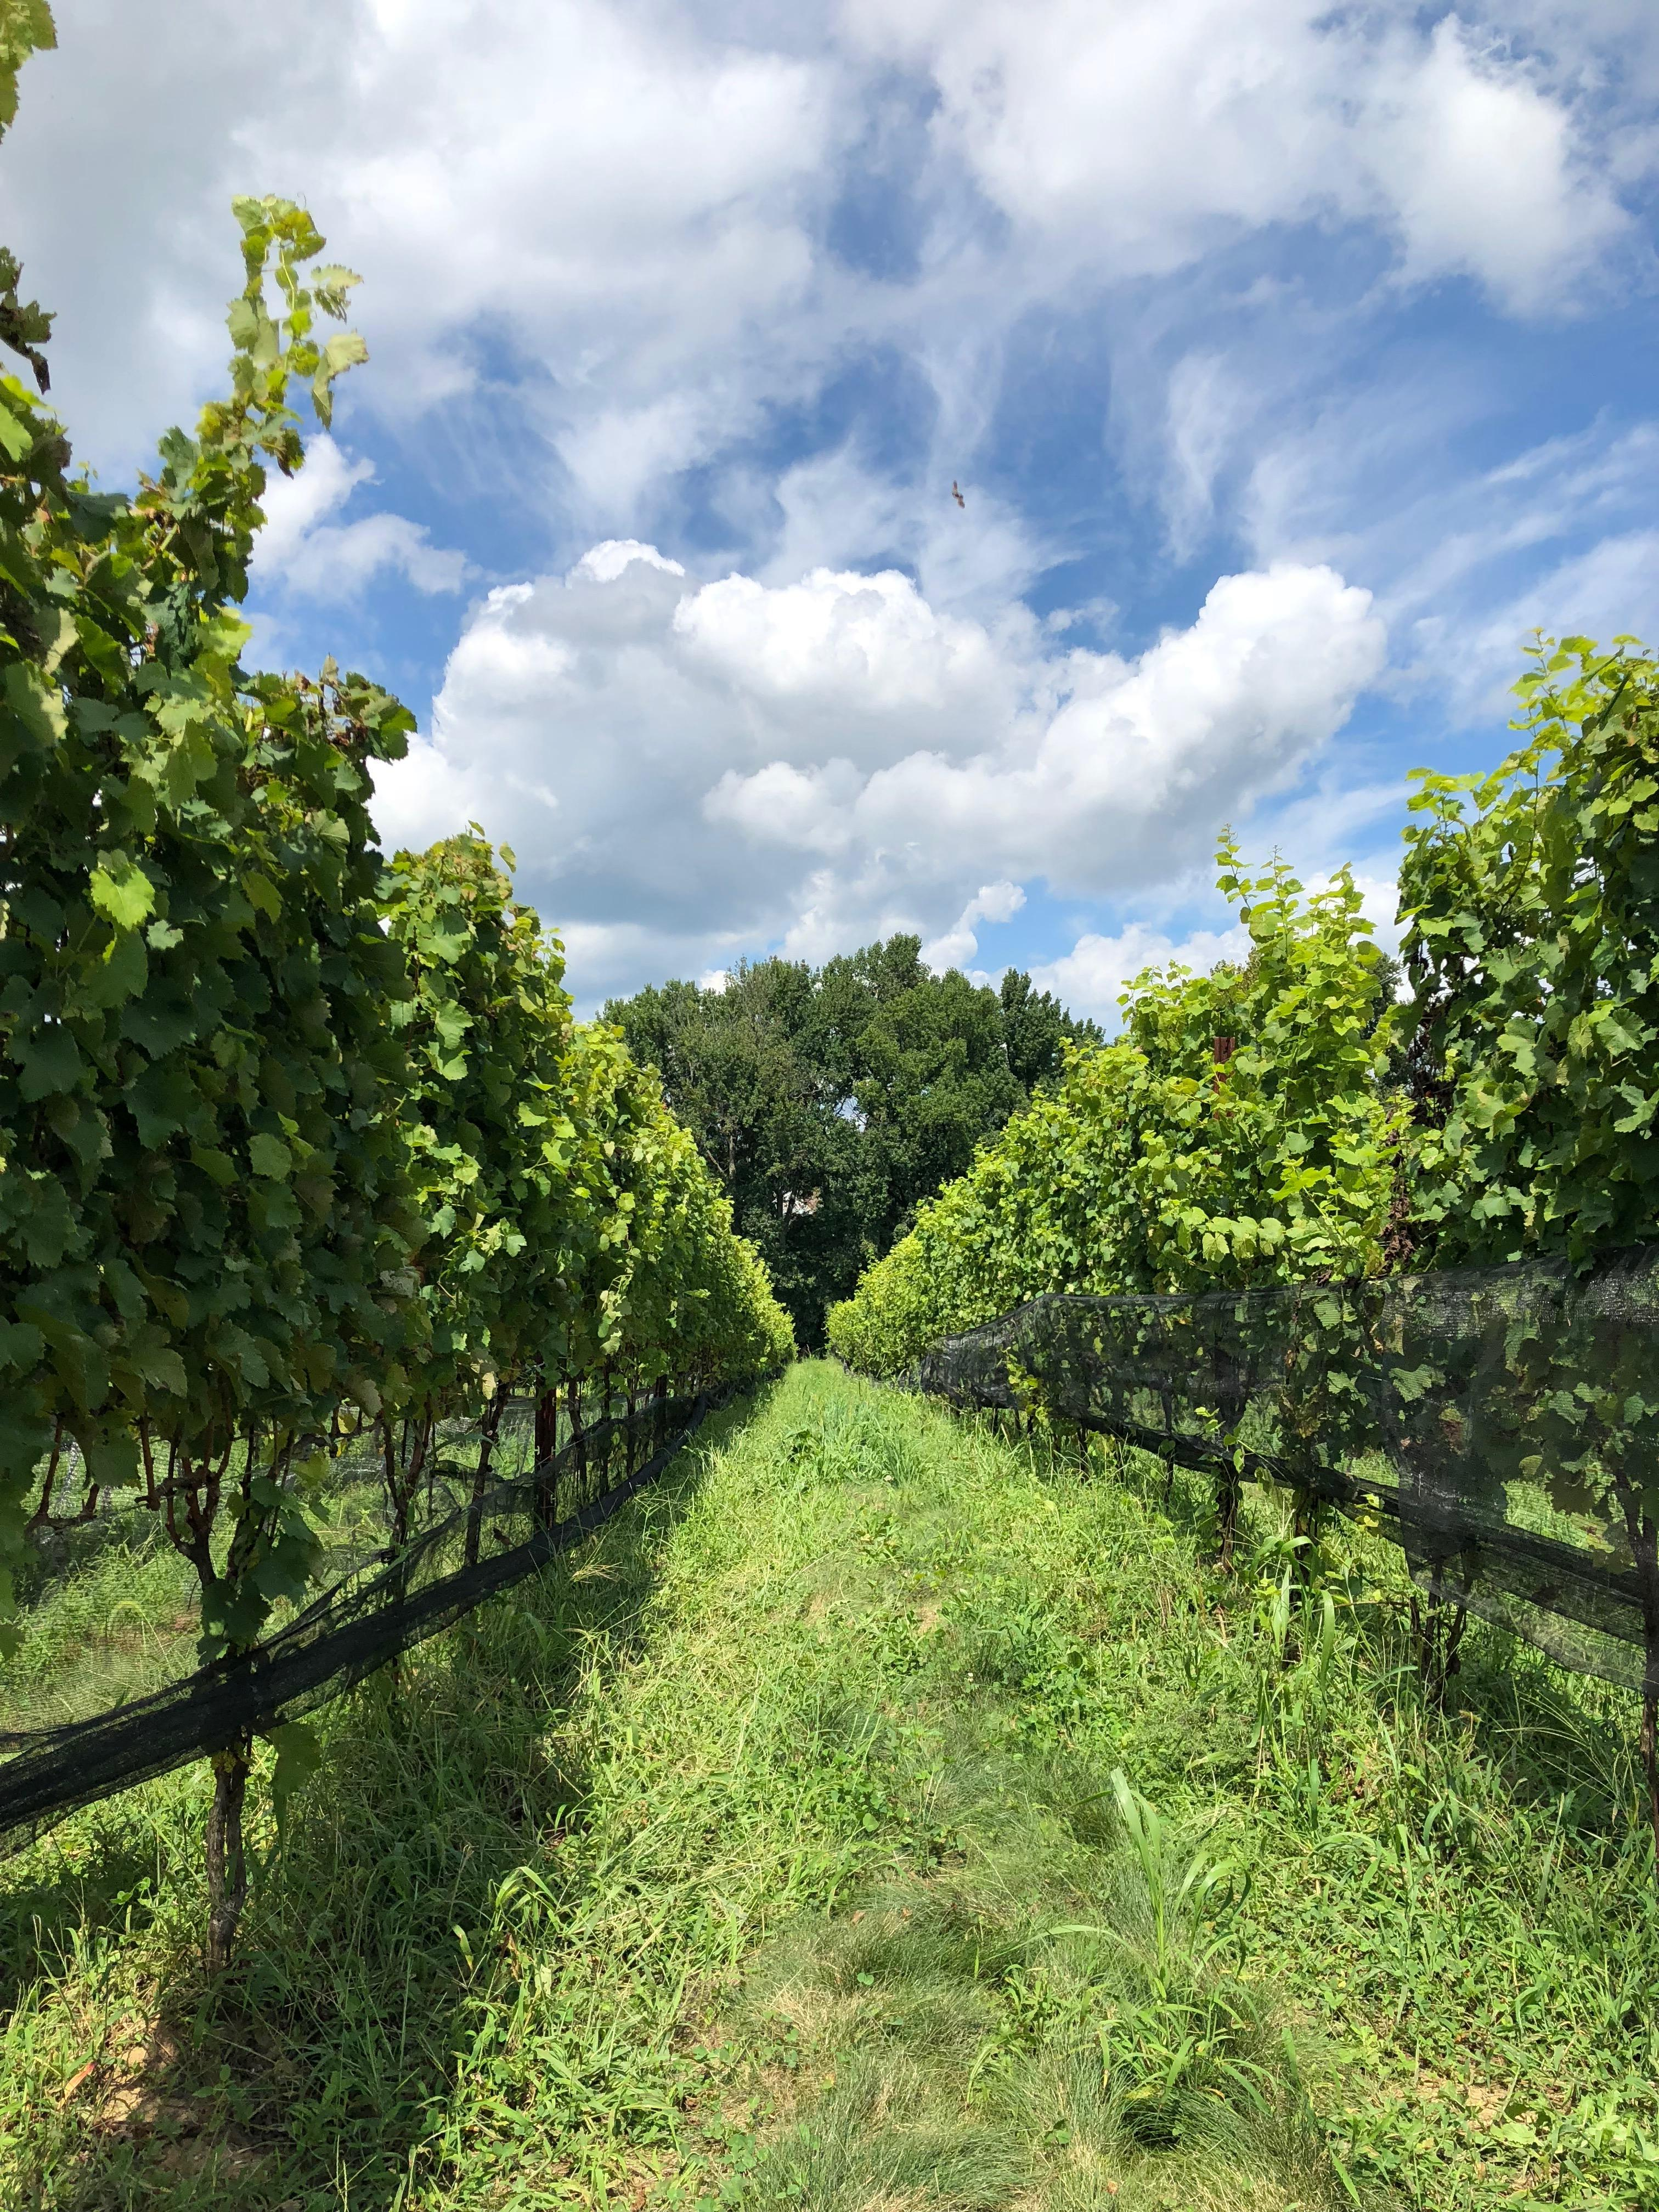 The Vineyards at Dodon, located in Davidsonville, Maryland, is a 40-minute drive from D.C. and just 20 minutes from Annapolis. (Image: Aparna Krishnamoorthy)